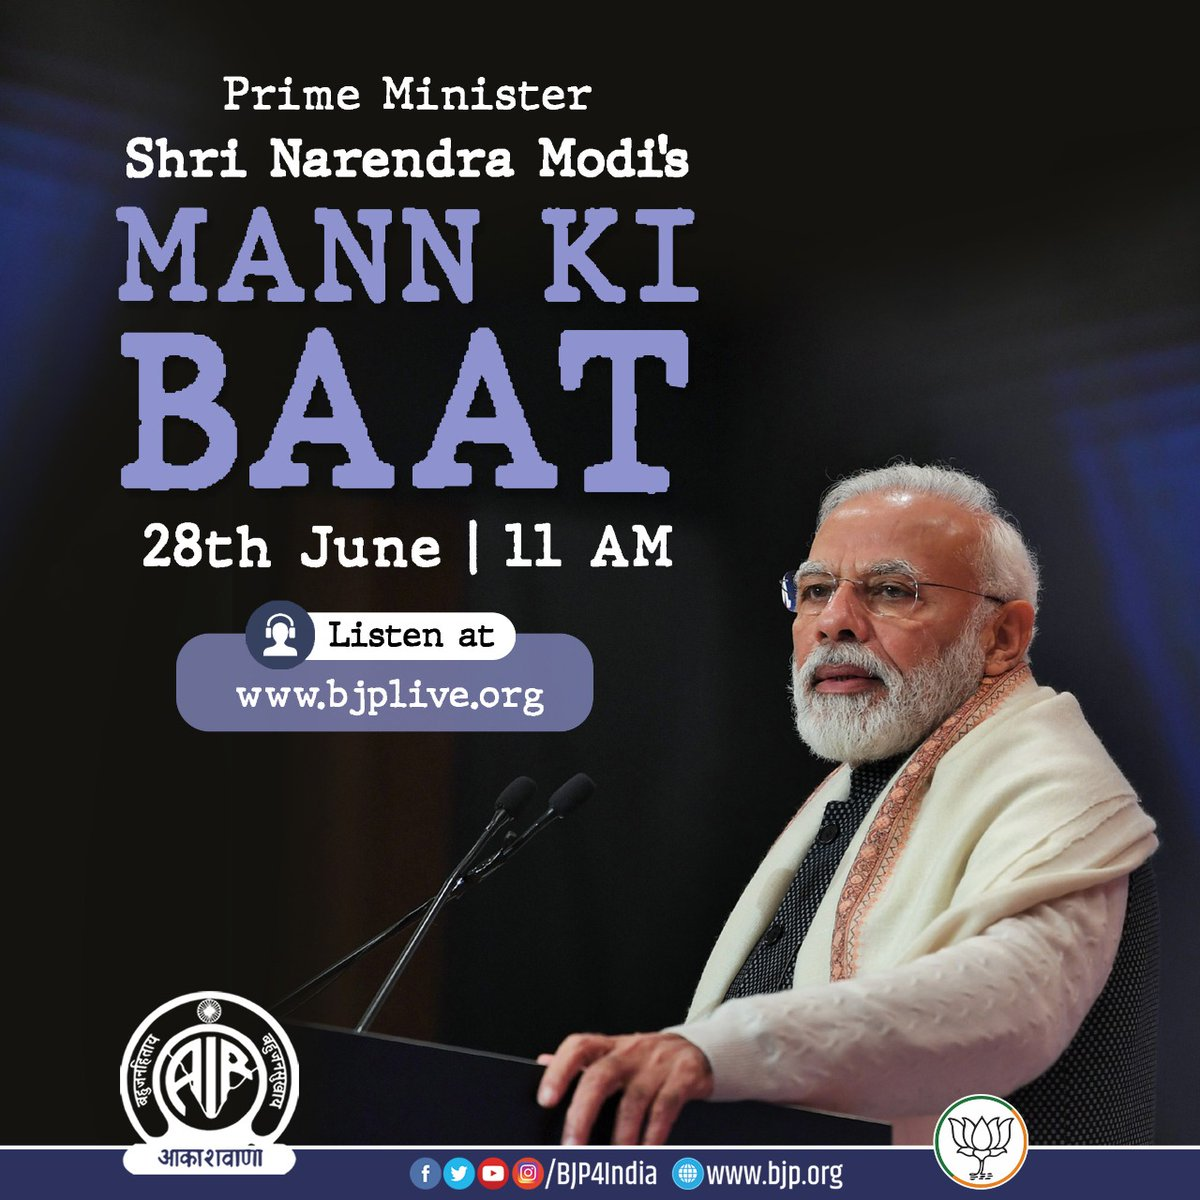 Tune in to PM Shri @narendramodis #MannKiBaat program at 11 am on 28 June 2020. Listen LIVE at • facebook.com/BJP4India • pscp.tv/BJP4India • youtube.com/BJP4India • bjplive.org